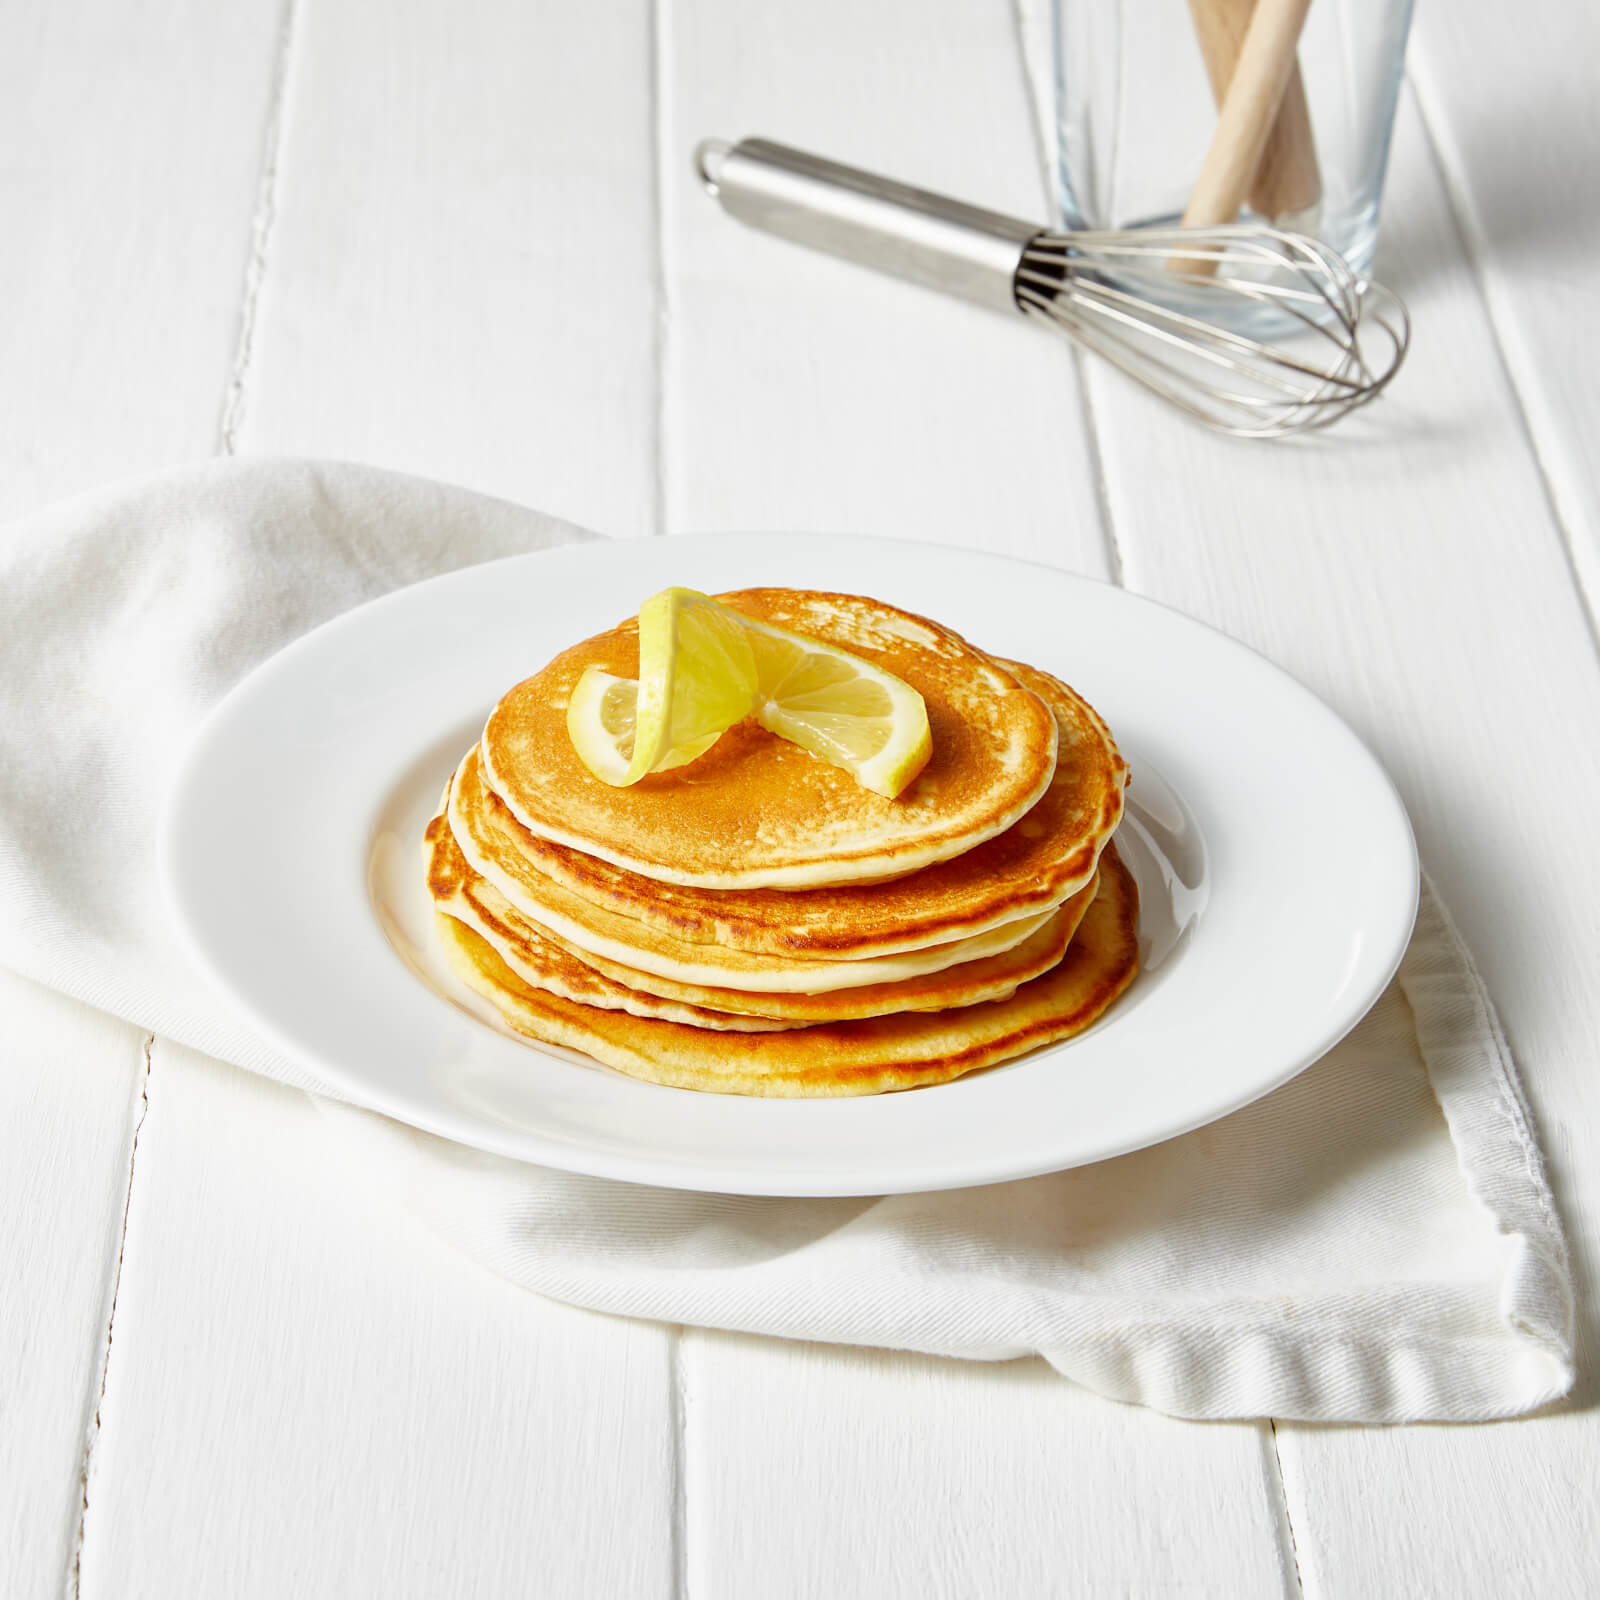 Meal Replacement Lemon Pancakes